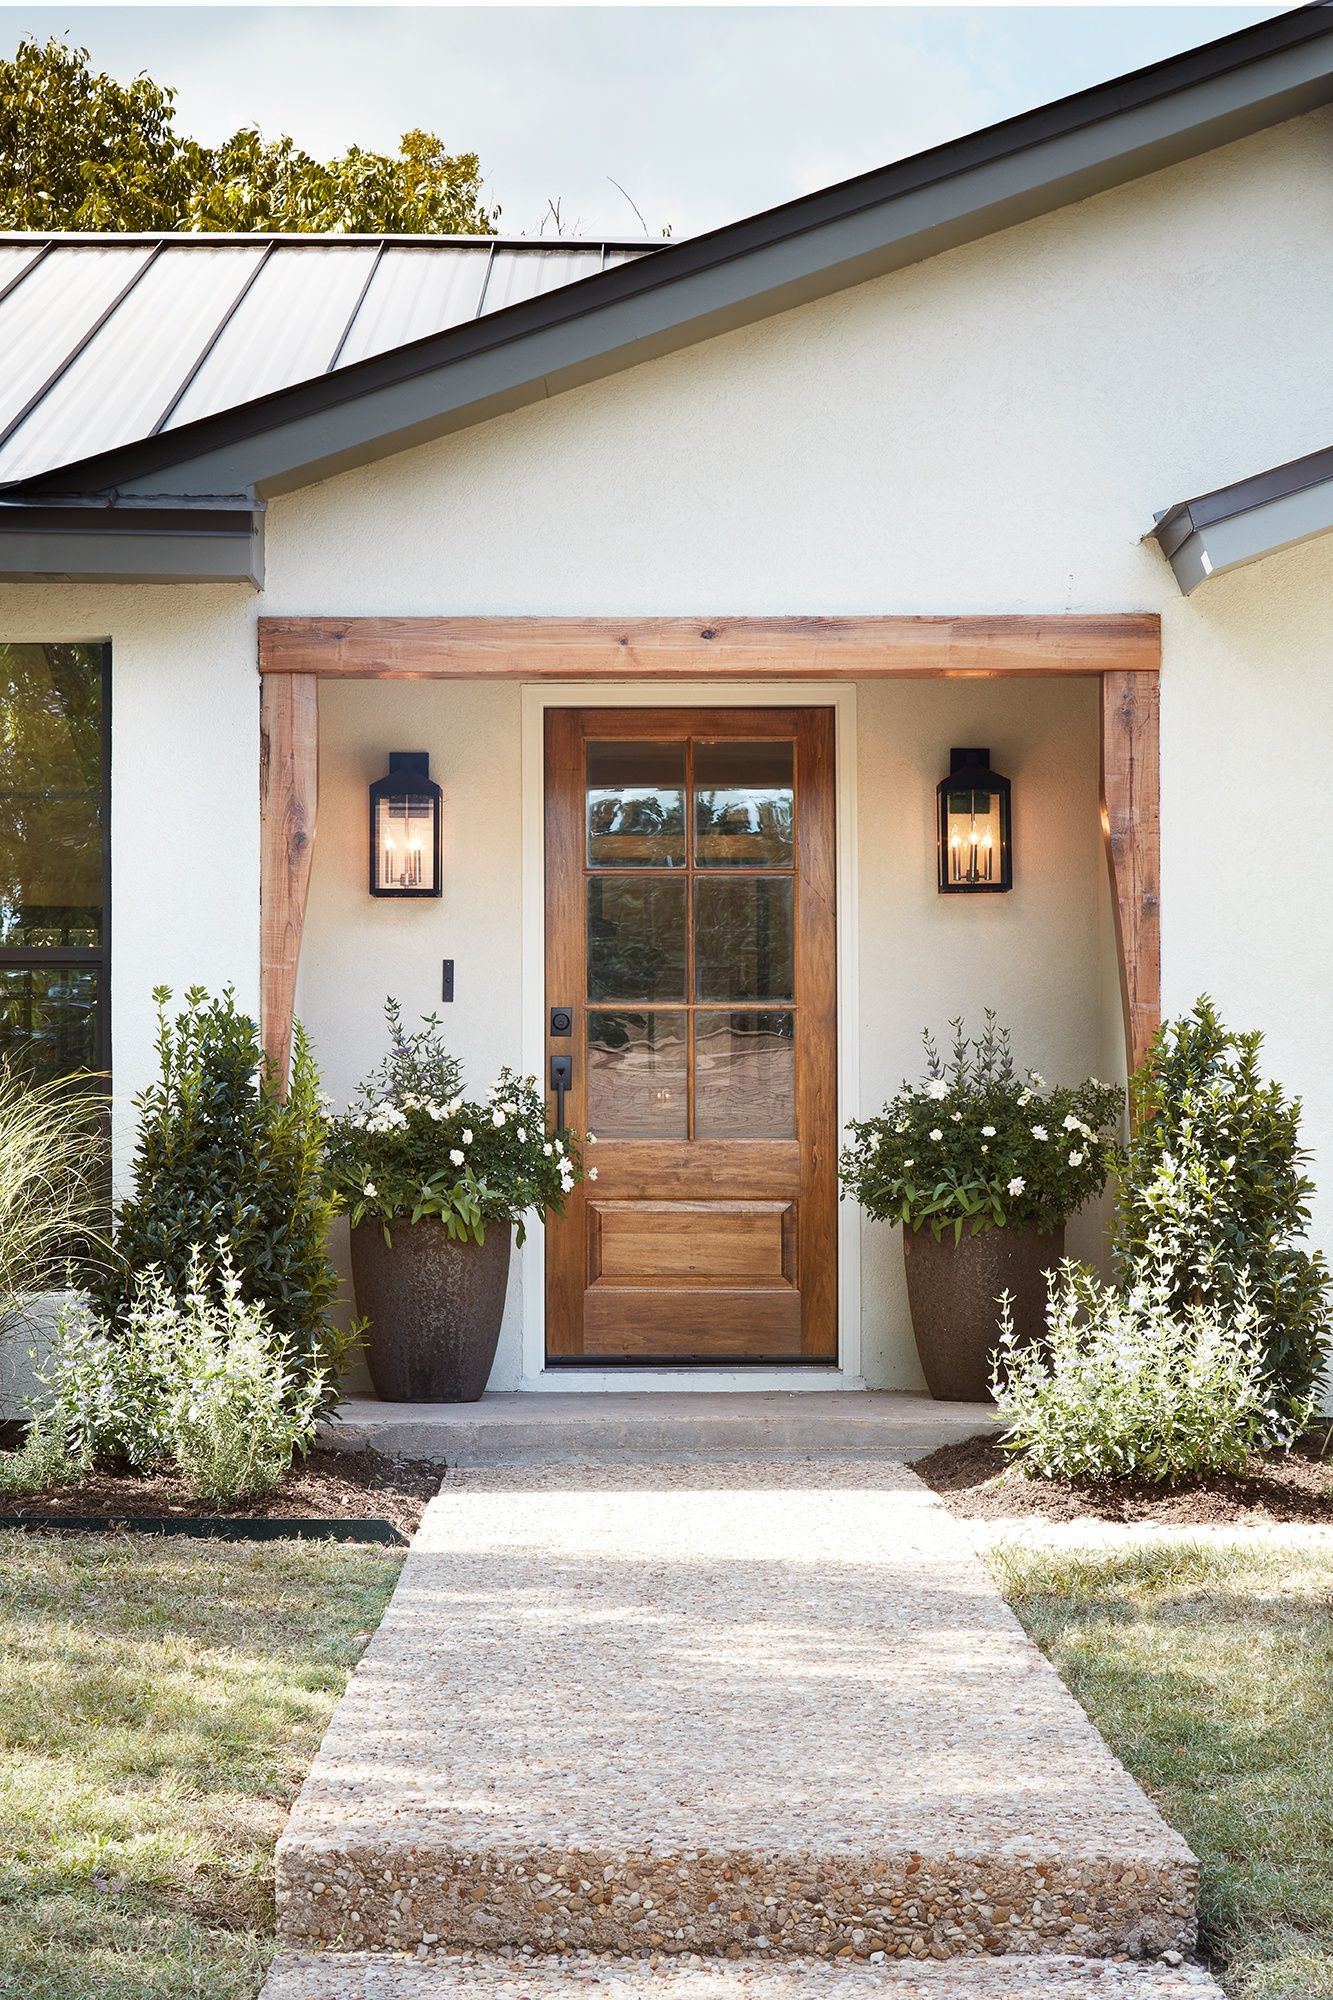 Magnolia Home Front Step Planters on front step lanterns, front step fences, front step figurines, front step landscaping, front step decks, front step boxes, front step walkways, front step flowers, front step lighting, front step benches, front step garden, front step pavers,